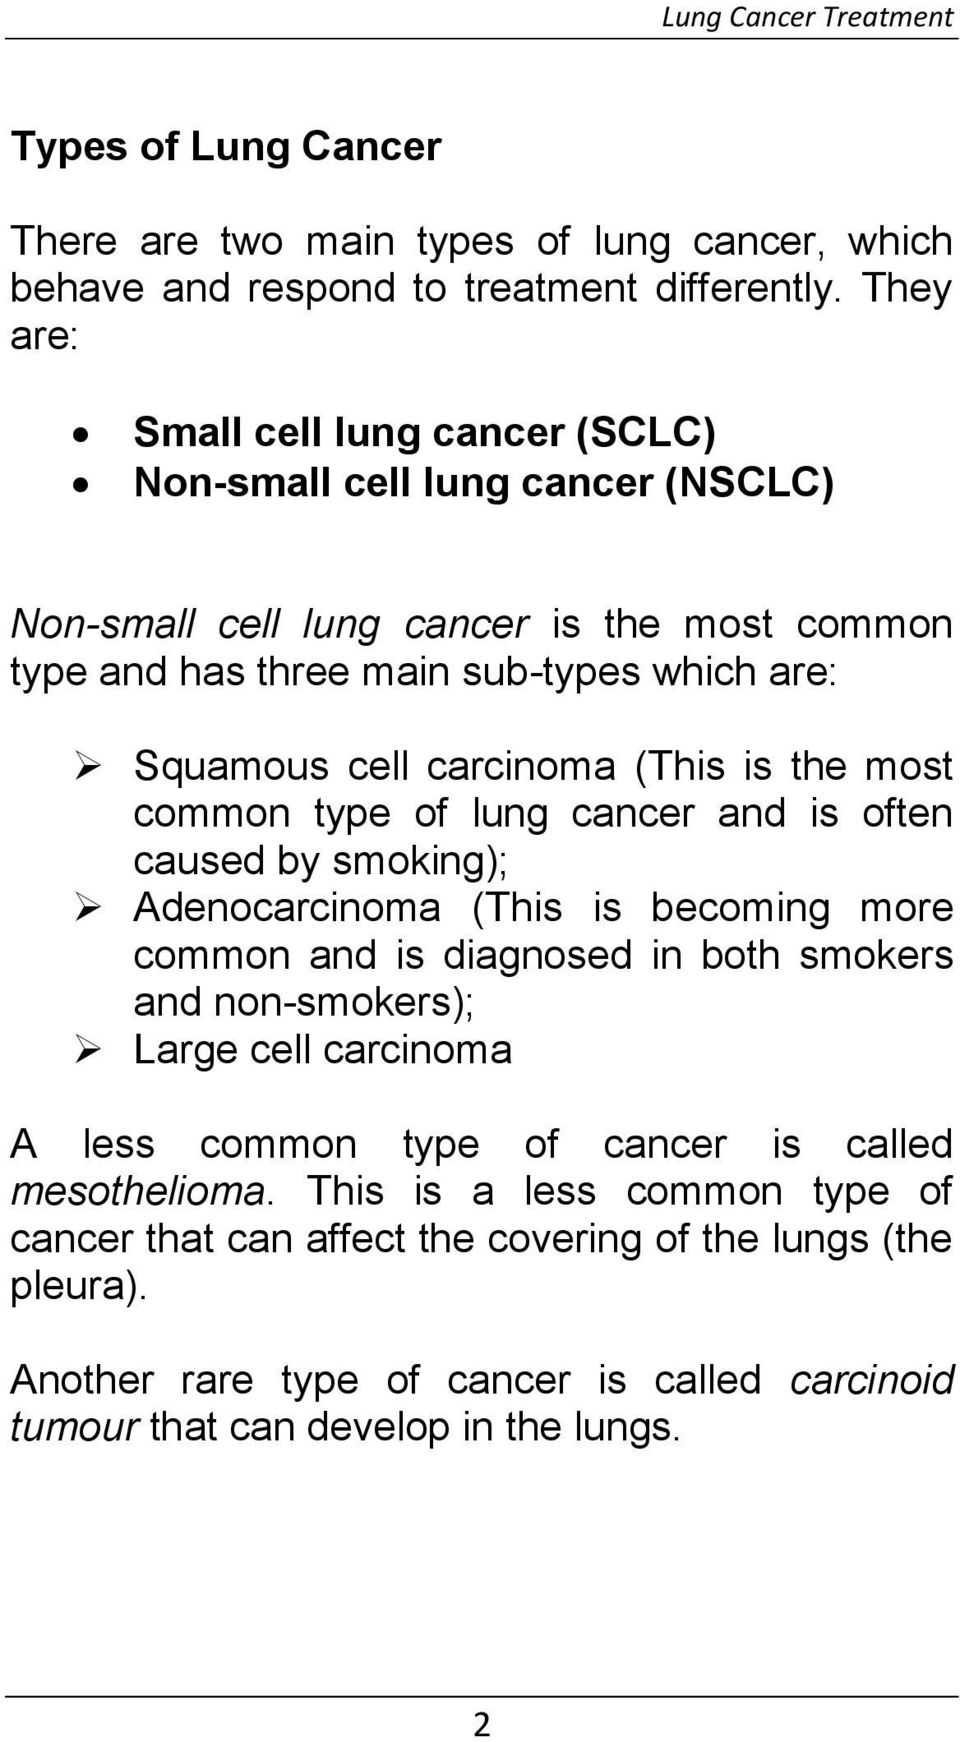 carcinoma (This is the most common type of lung cancer and is often caused by smoking); Adenocarcinoma (This is becoming more common and is diagnosed in both smokers and